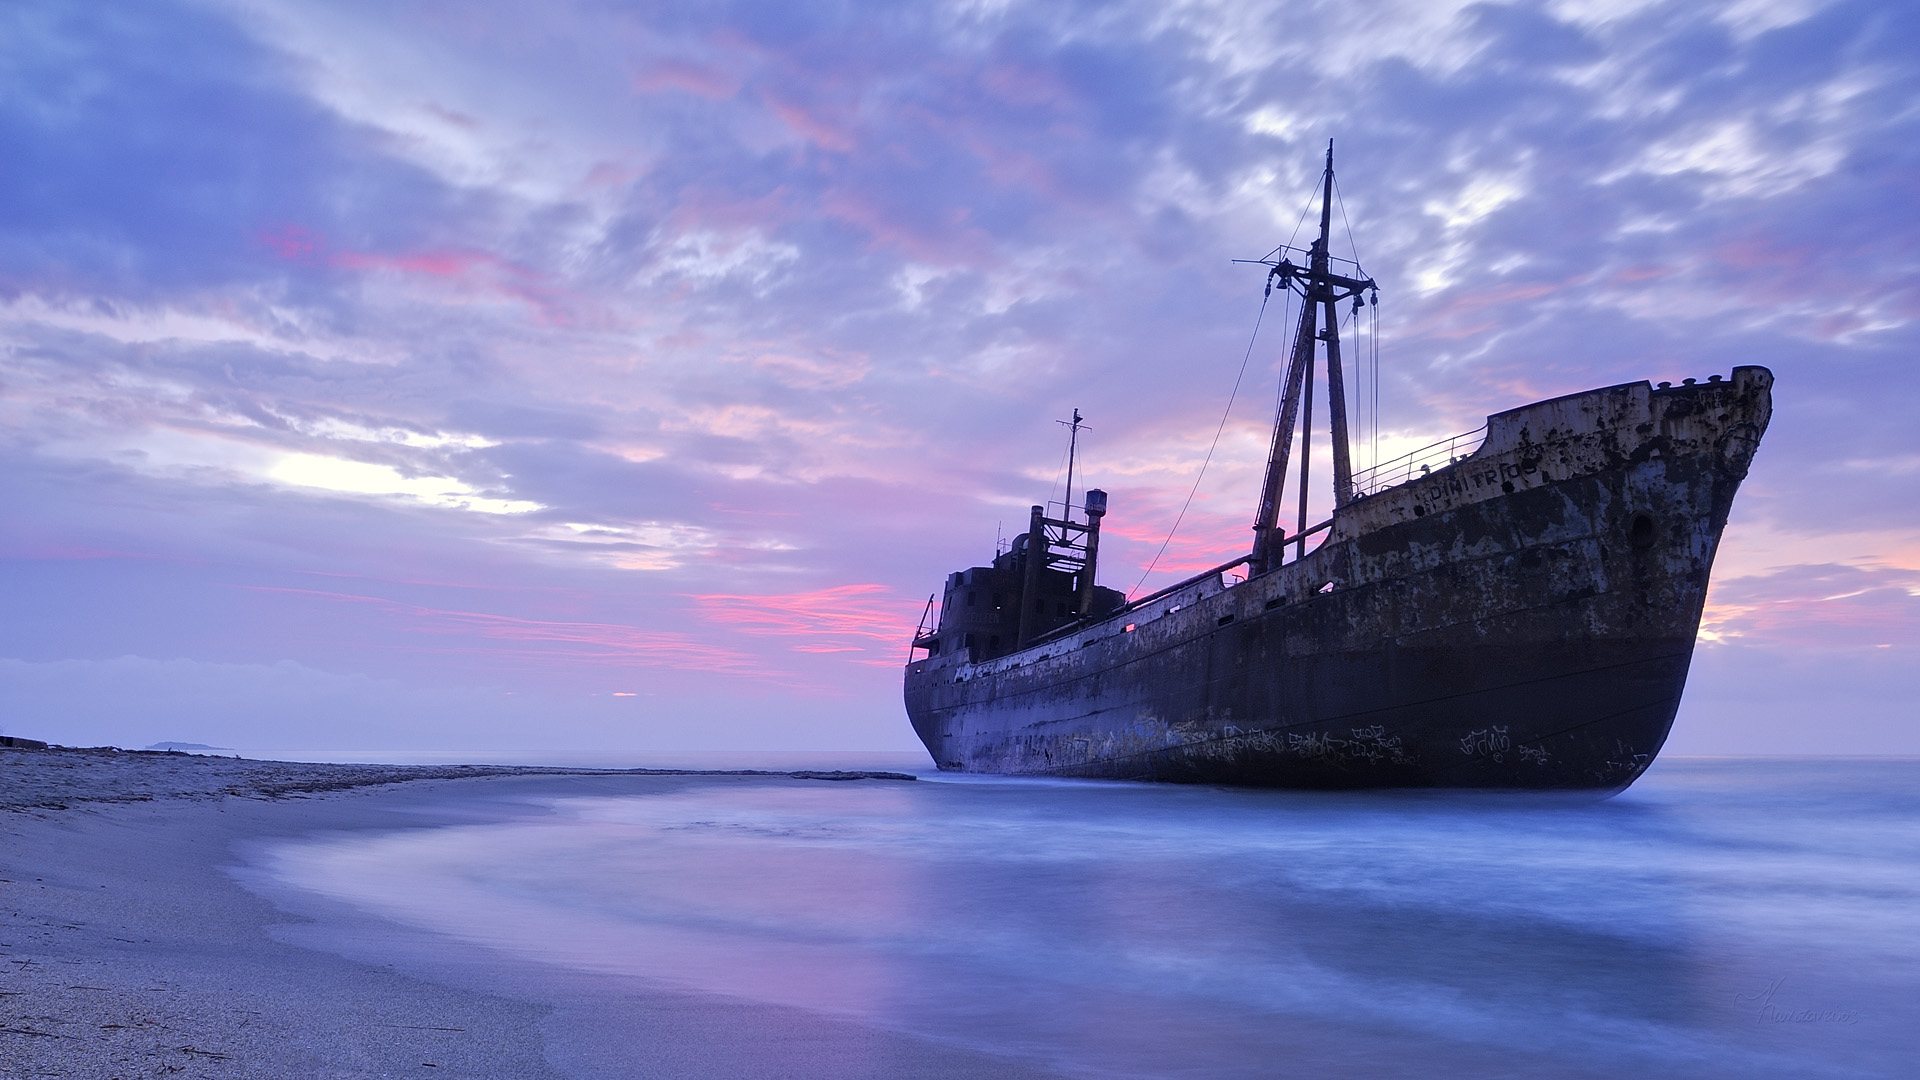 ship is stranded full hd wallpaper full hd wallpapers download